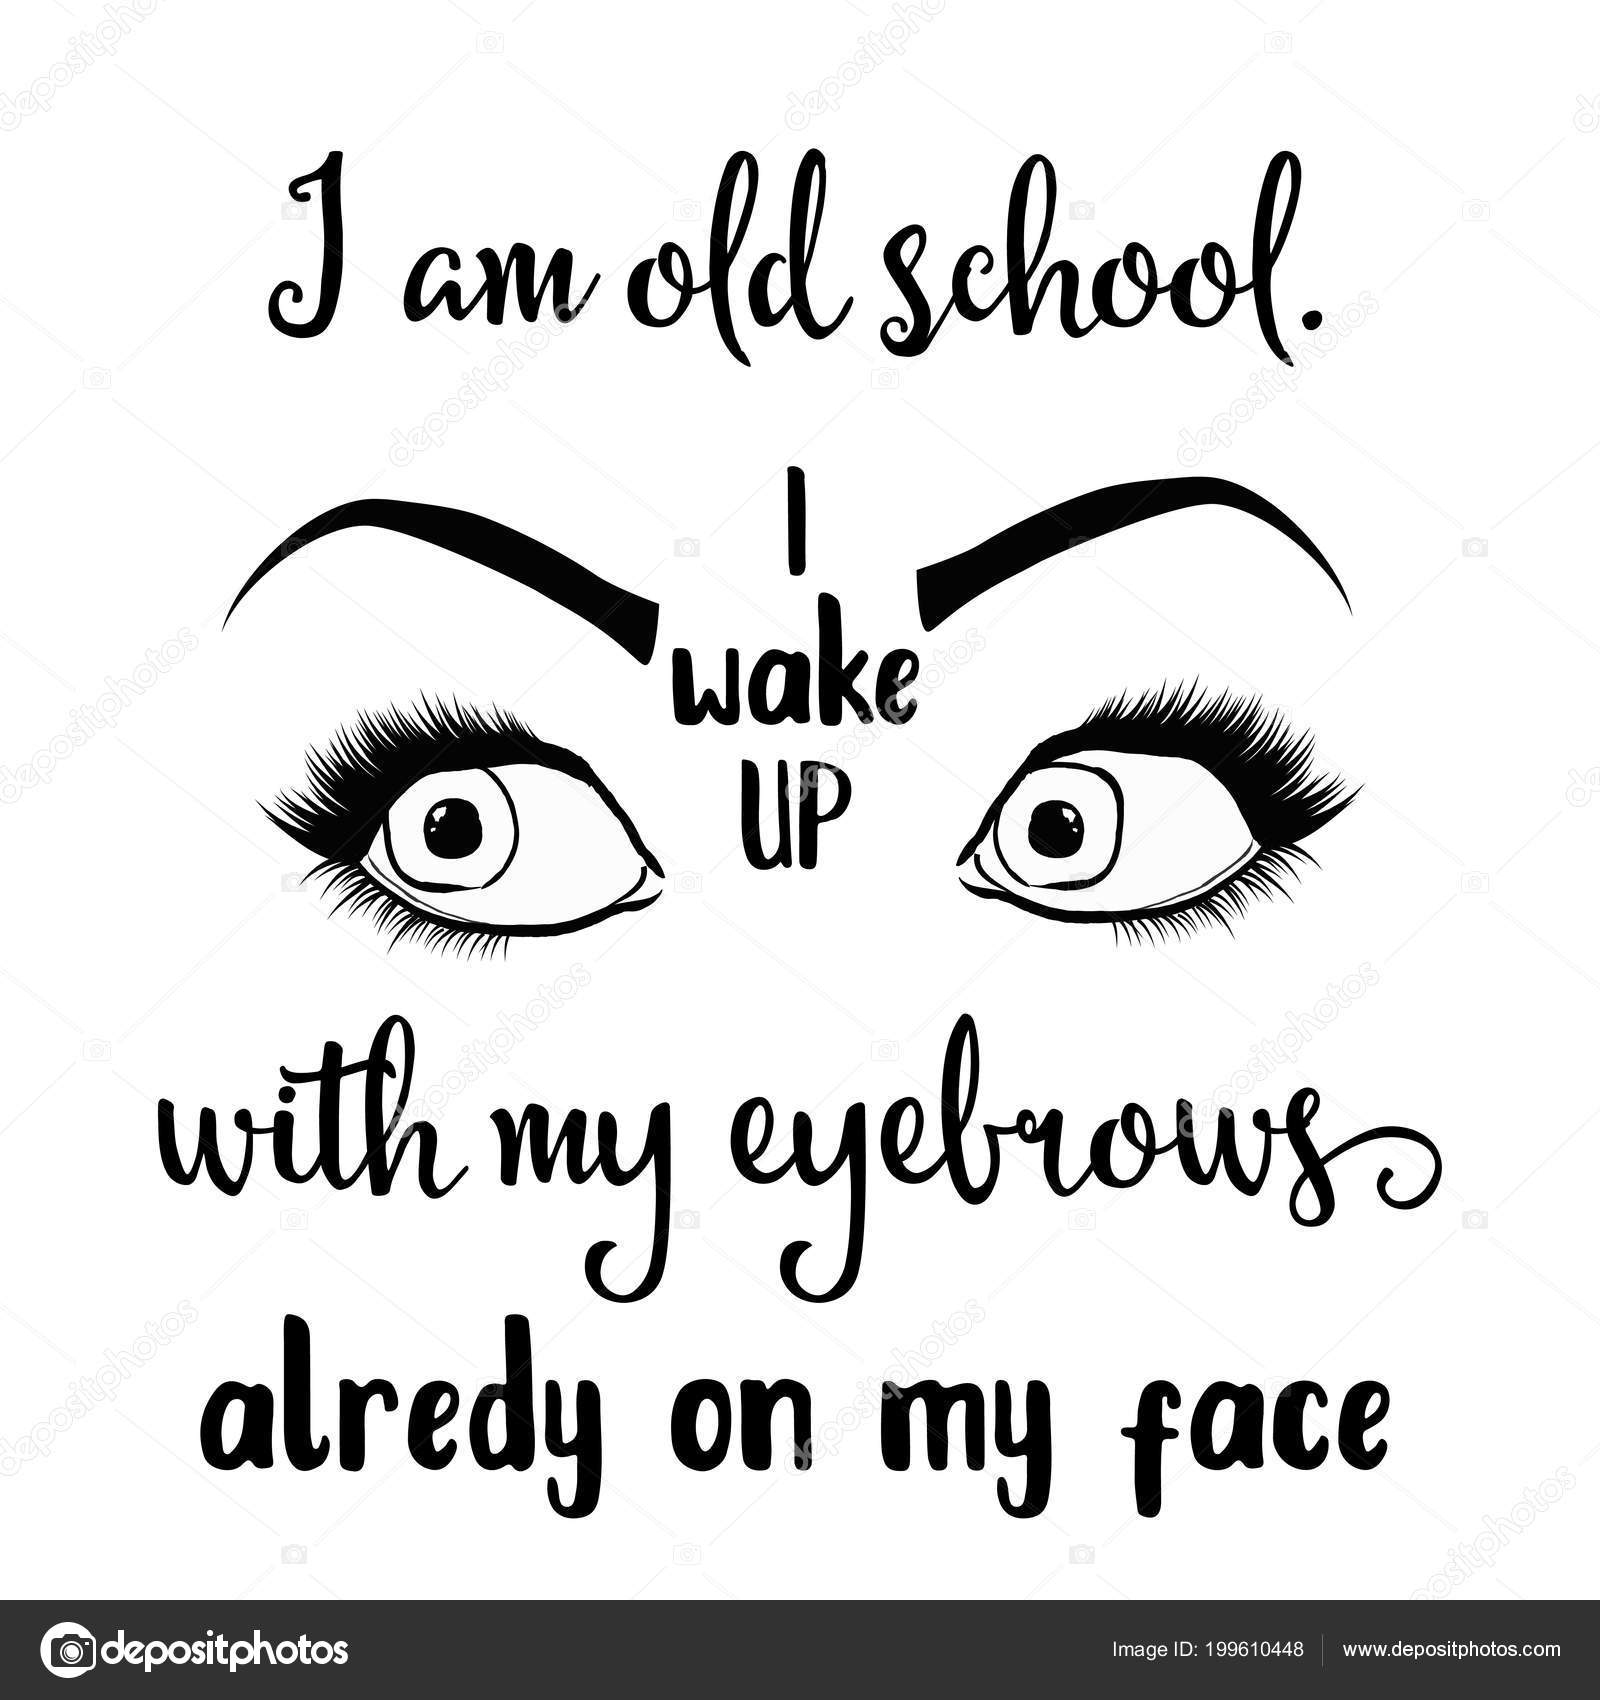 Pics: eyebrow quotes | Funny Quote Old School Wake Eyebrows ...